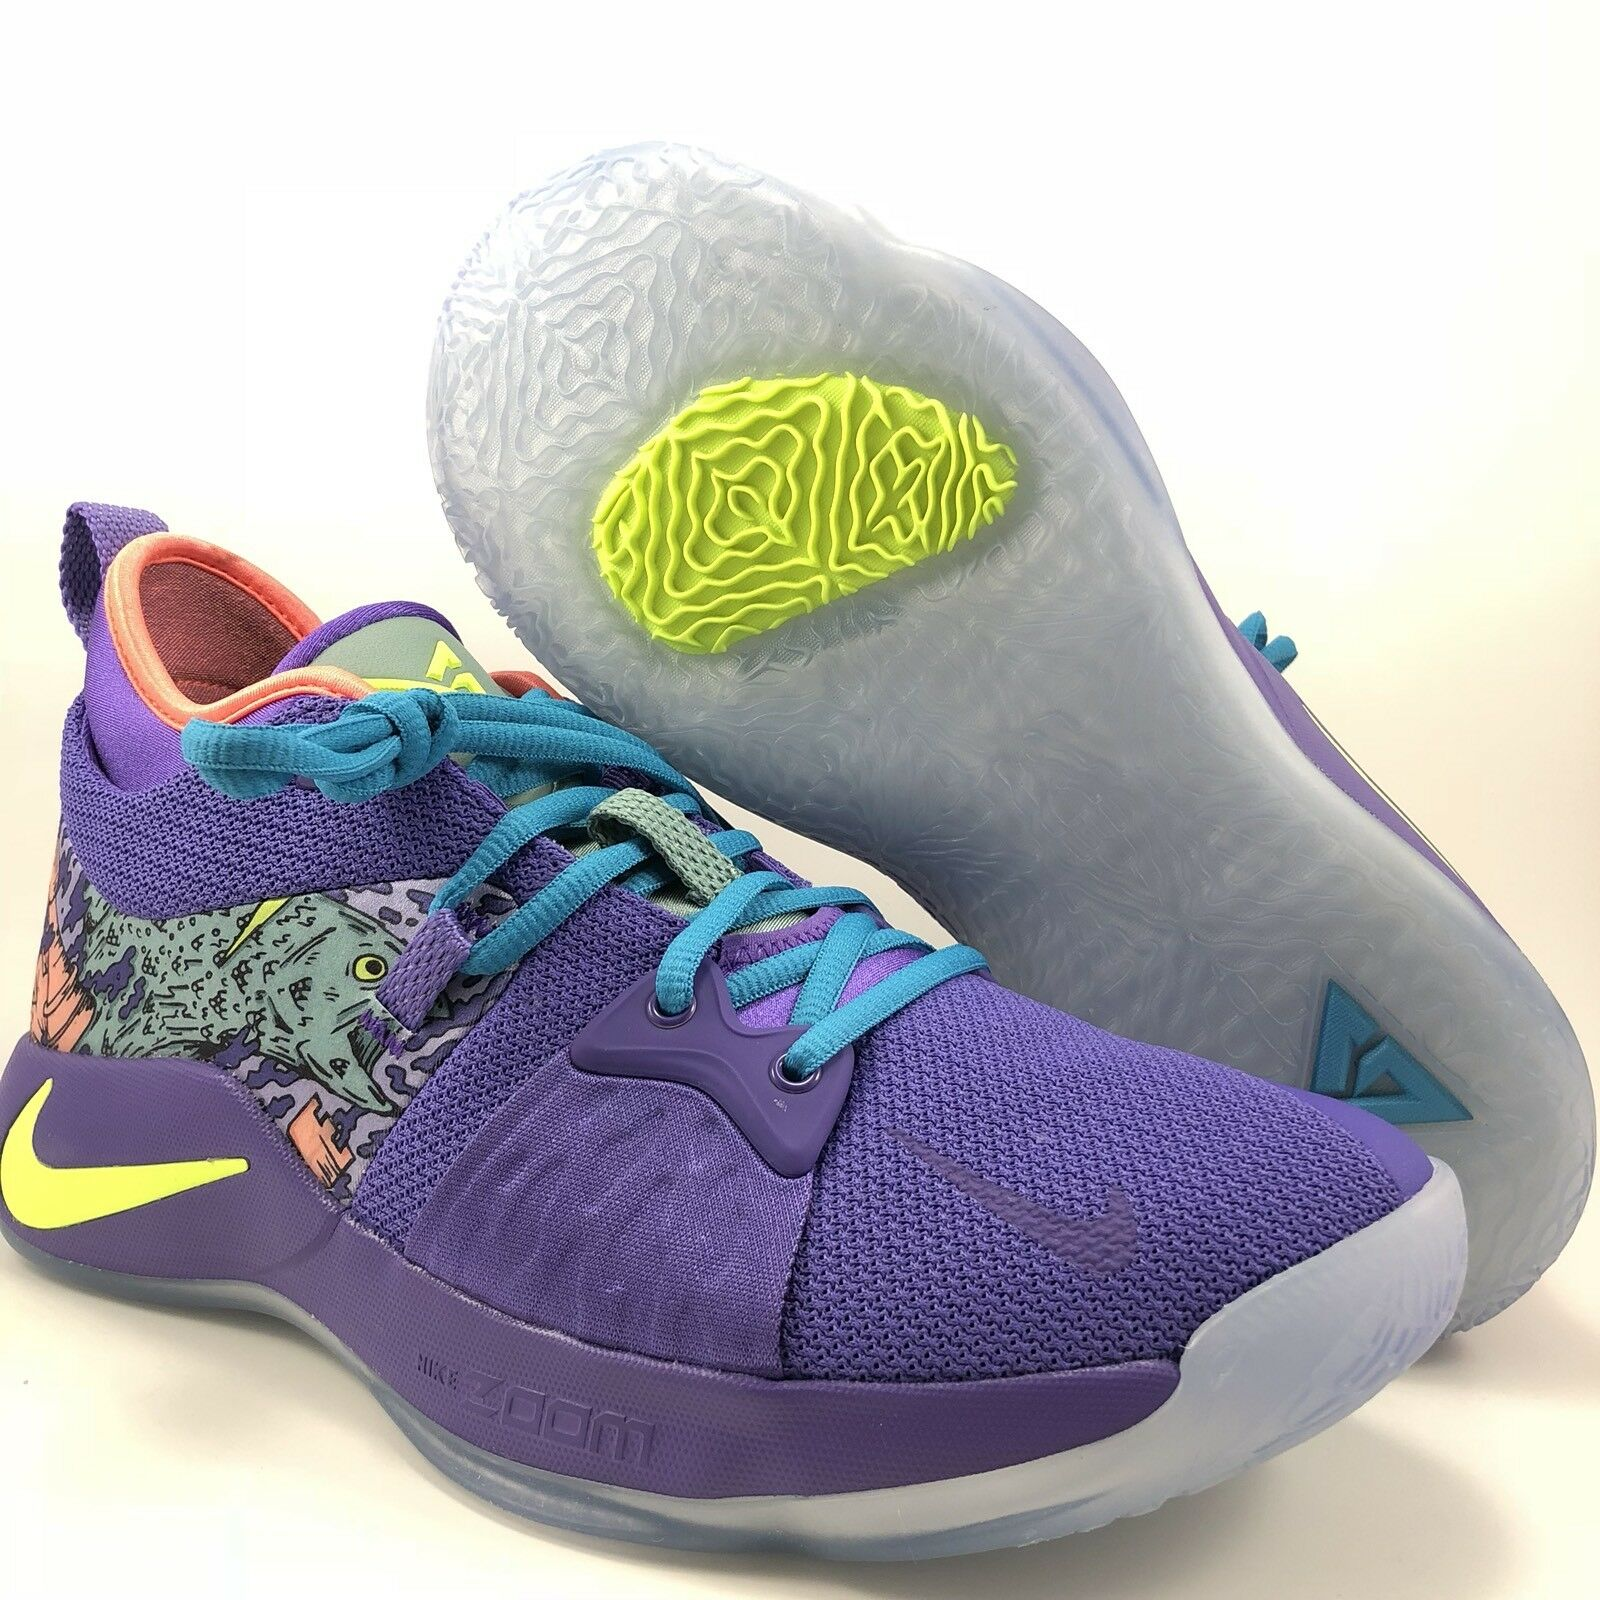 nike pg paul ii mamba mentalité cannon violet paul pg george   taille 8,5 (ao2986 001) 1aab9a